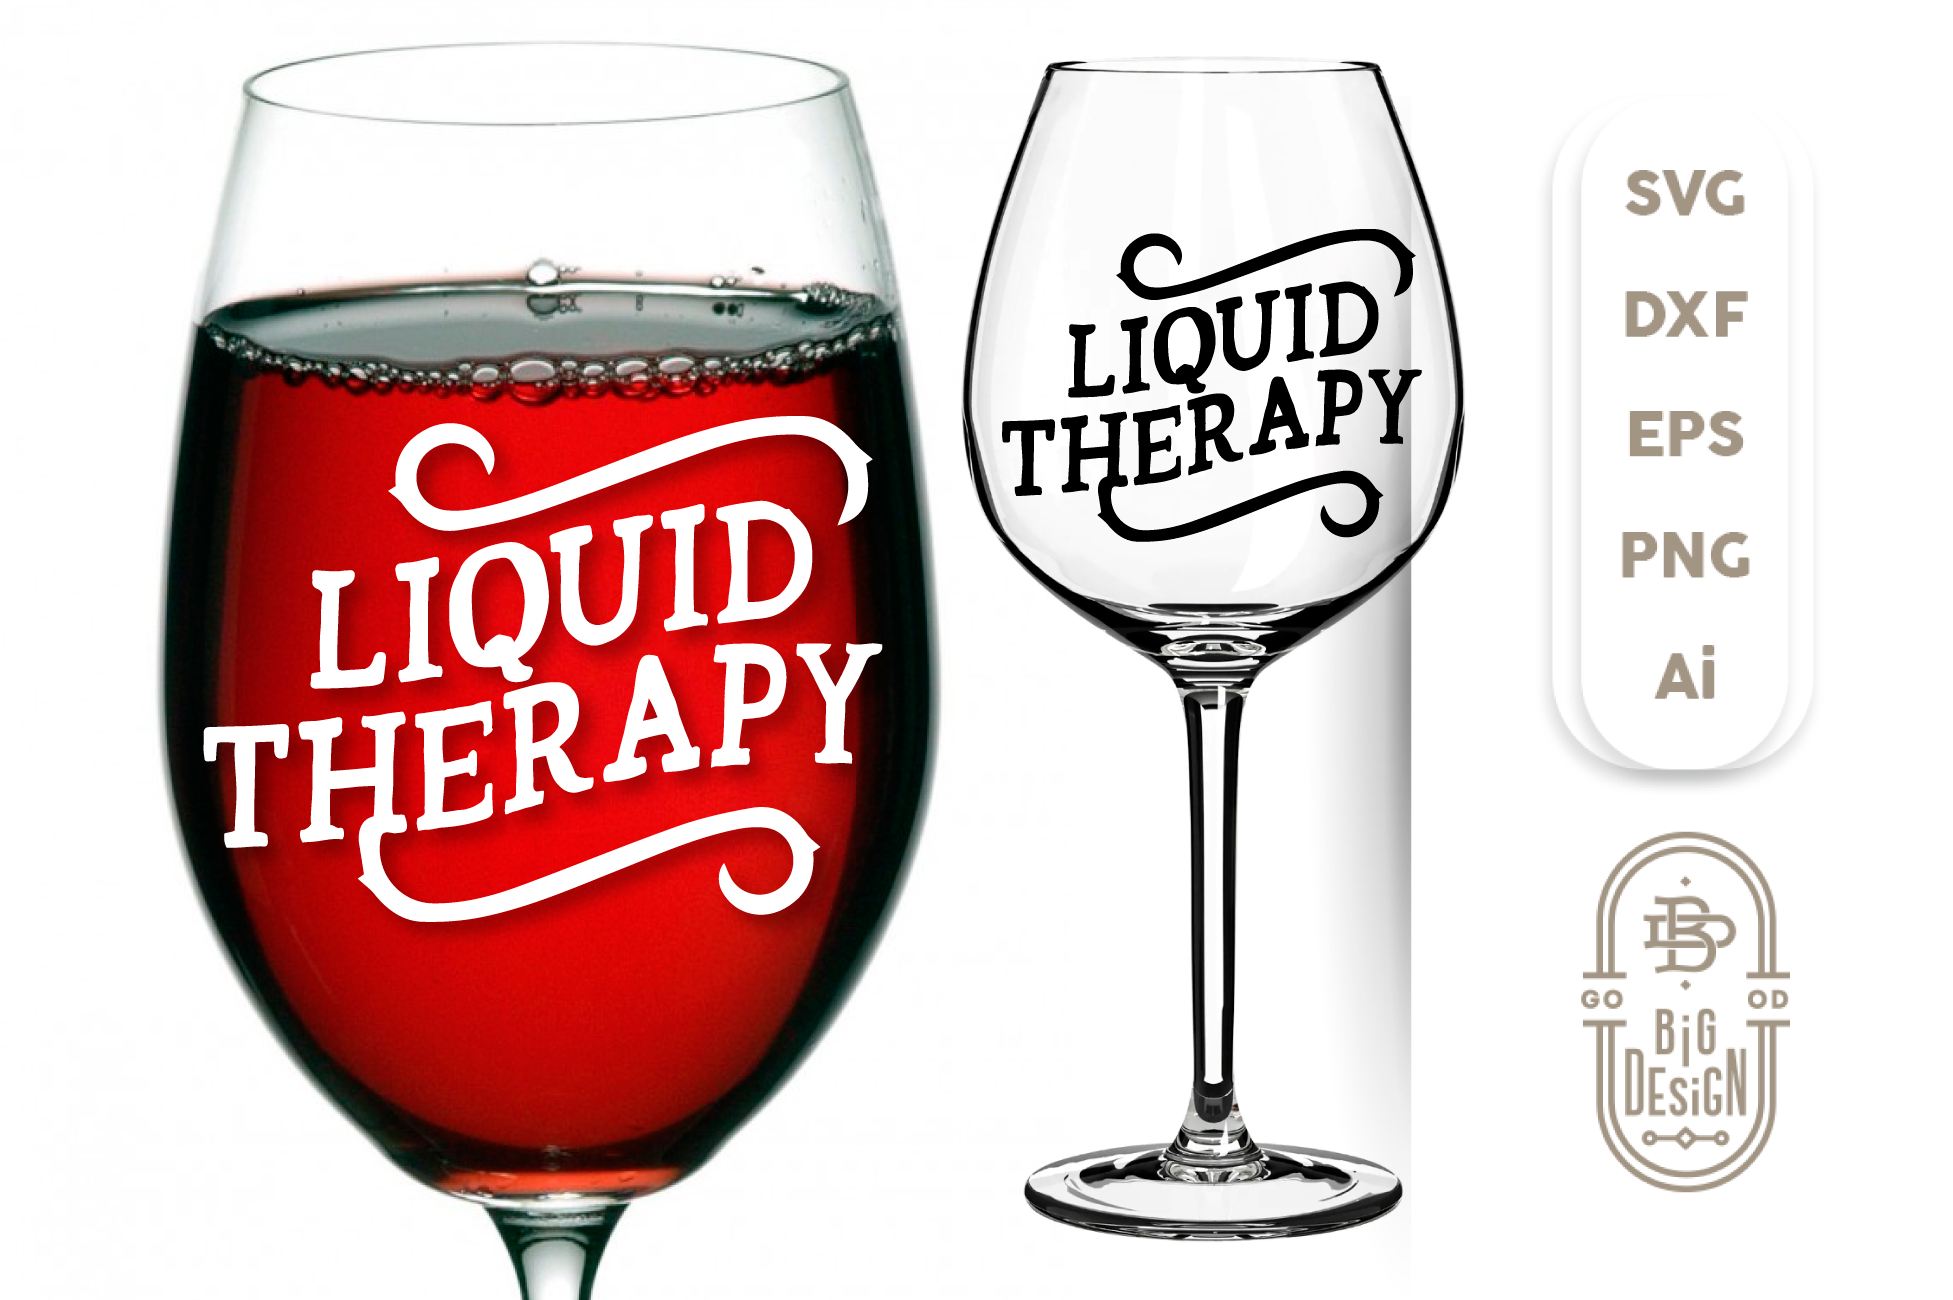 Free If you have any questions, please feel free to message me on etsy. Wine Svg Liquid Therapy Svg Wine Saying Svg Cut File Wine Glass Design Shopy SVG, PNG, EPS, DXF File